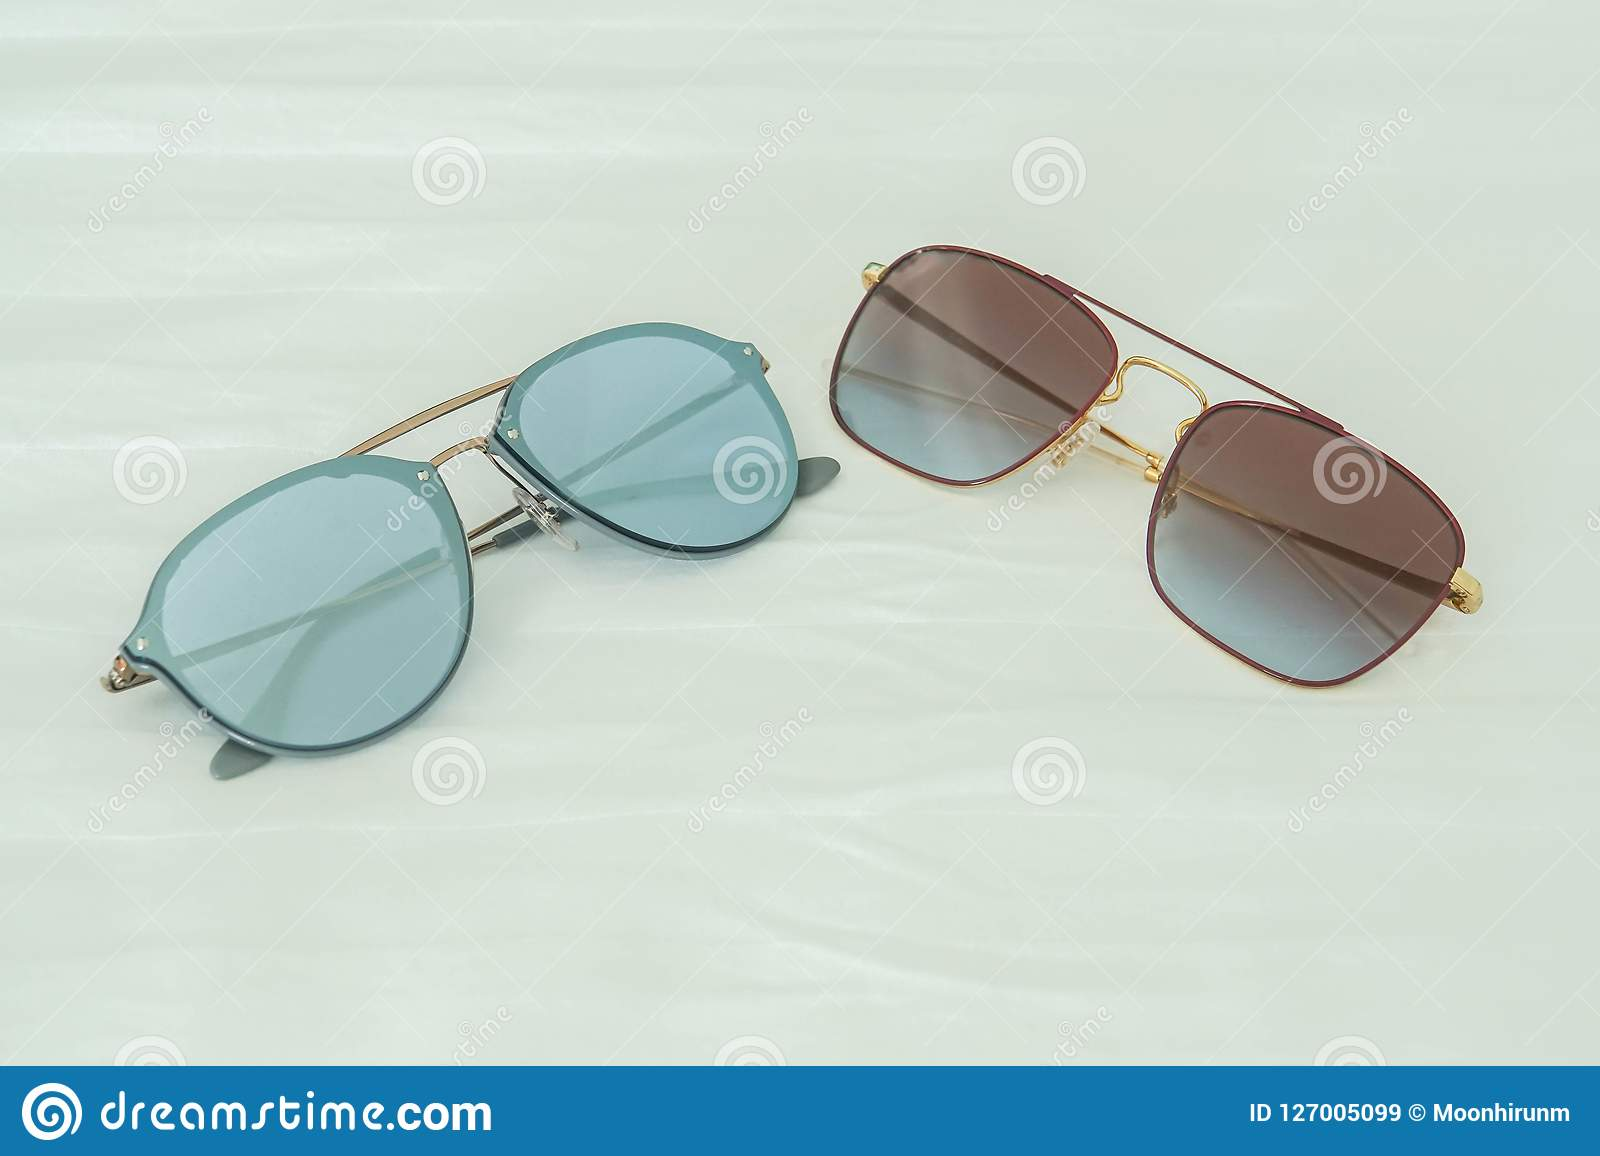 Women sunglasses in blue and deep pink for wearing in outdoors activities in holidays